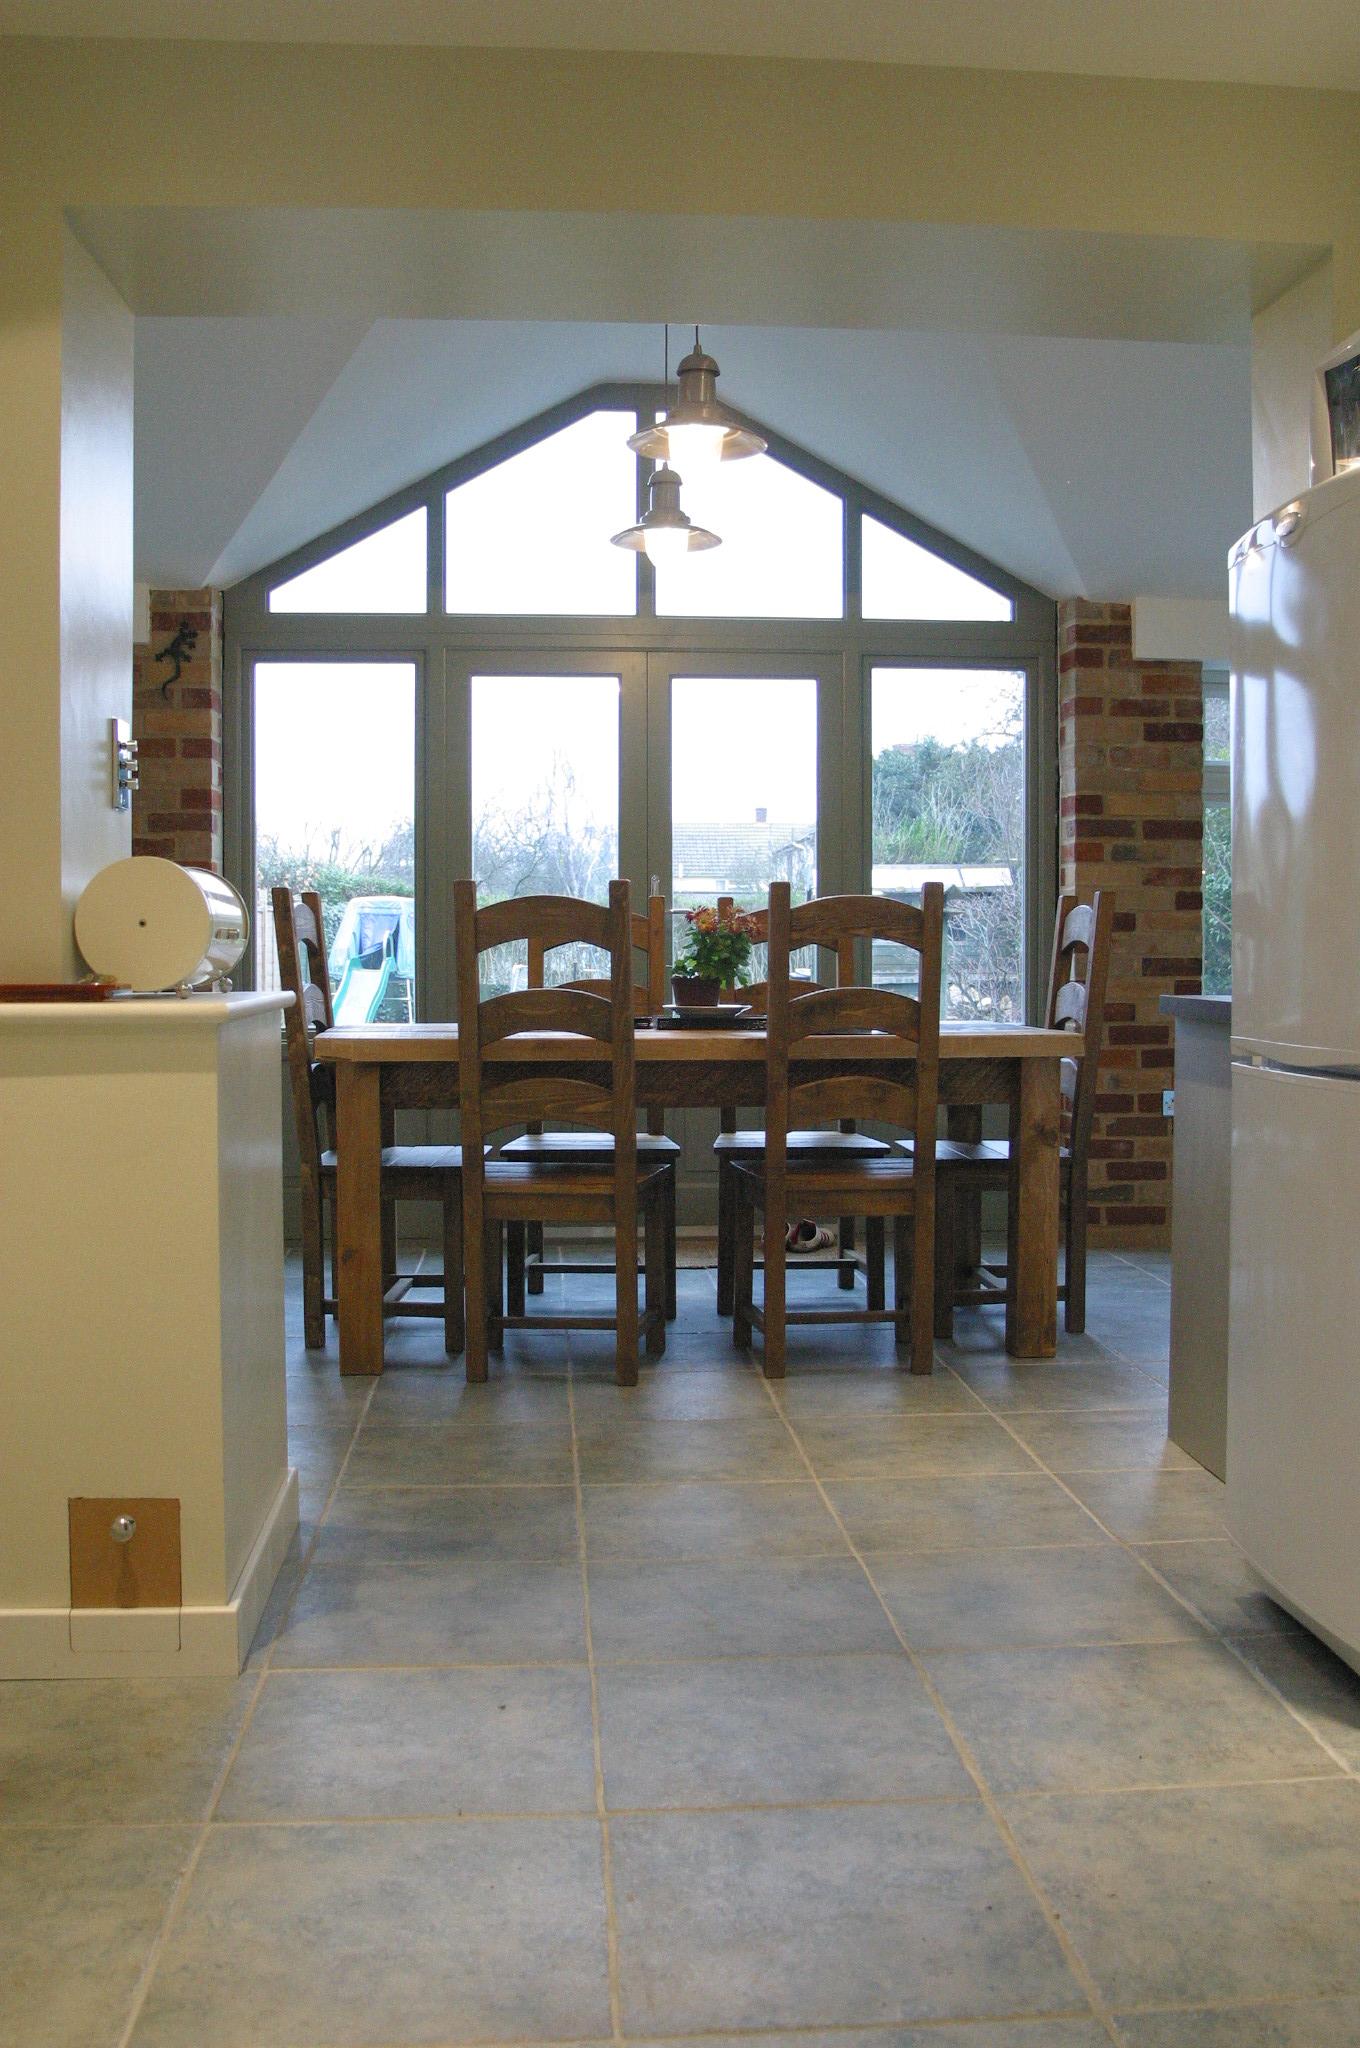 Kitchen extension project 6 heritage orangeries for Garden room extension interior